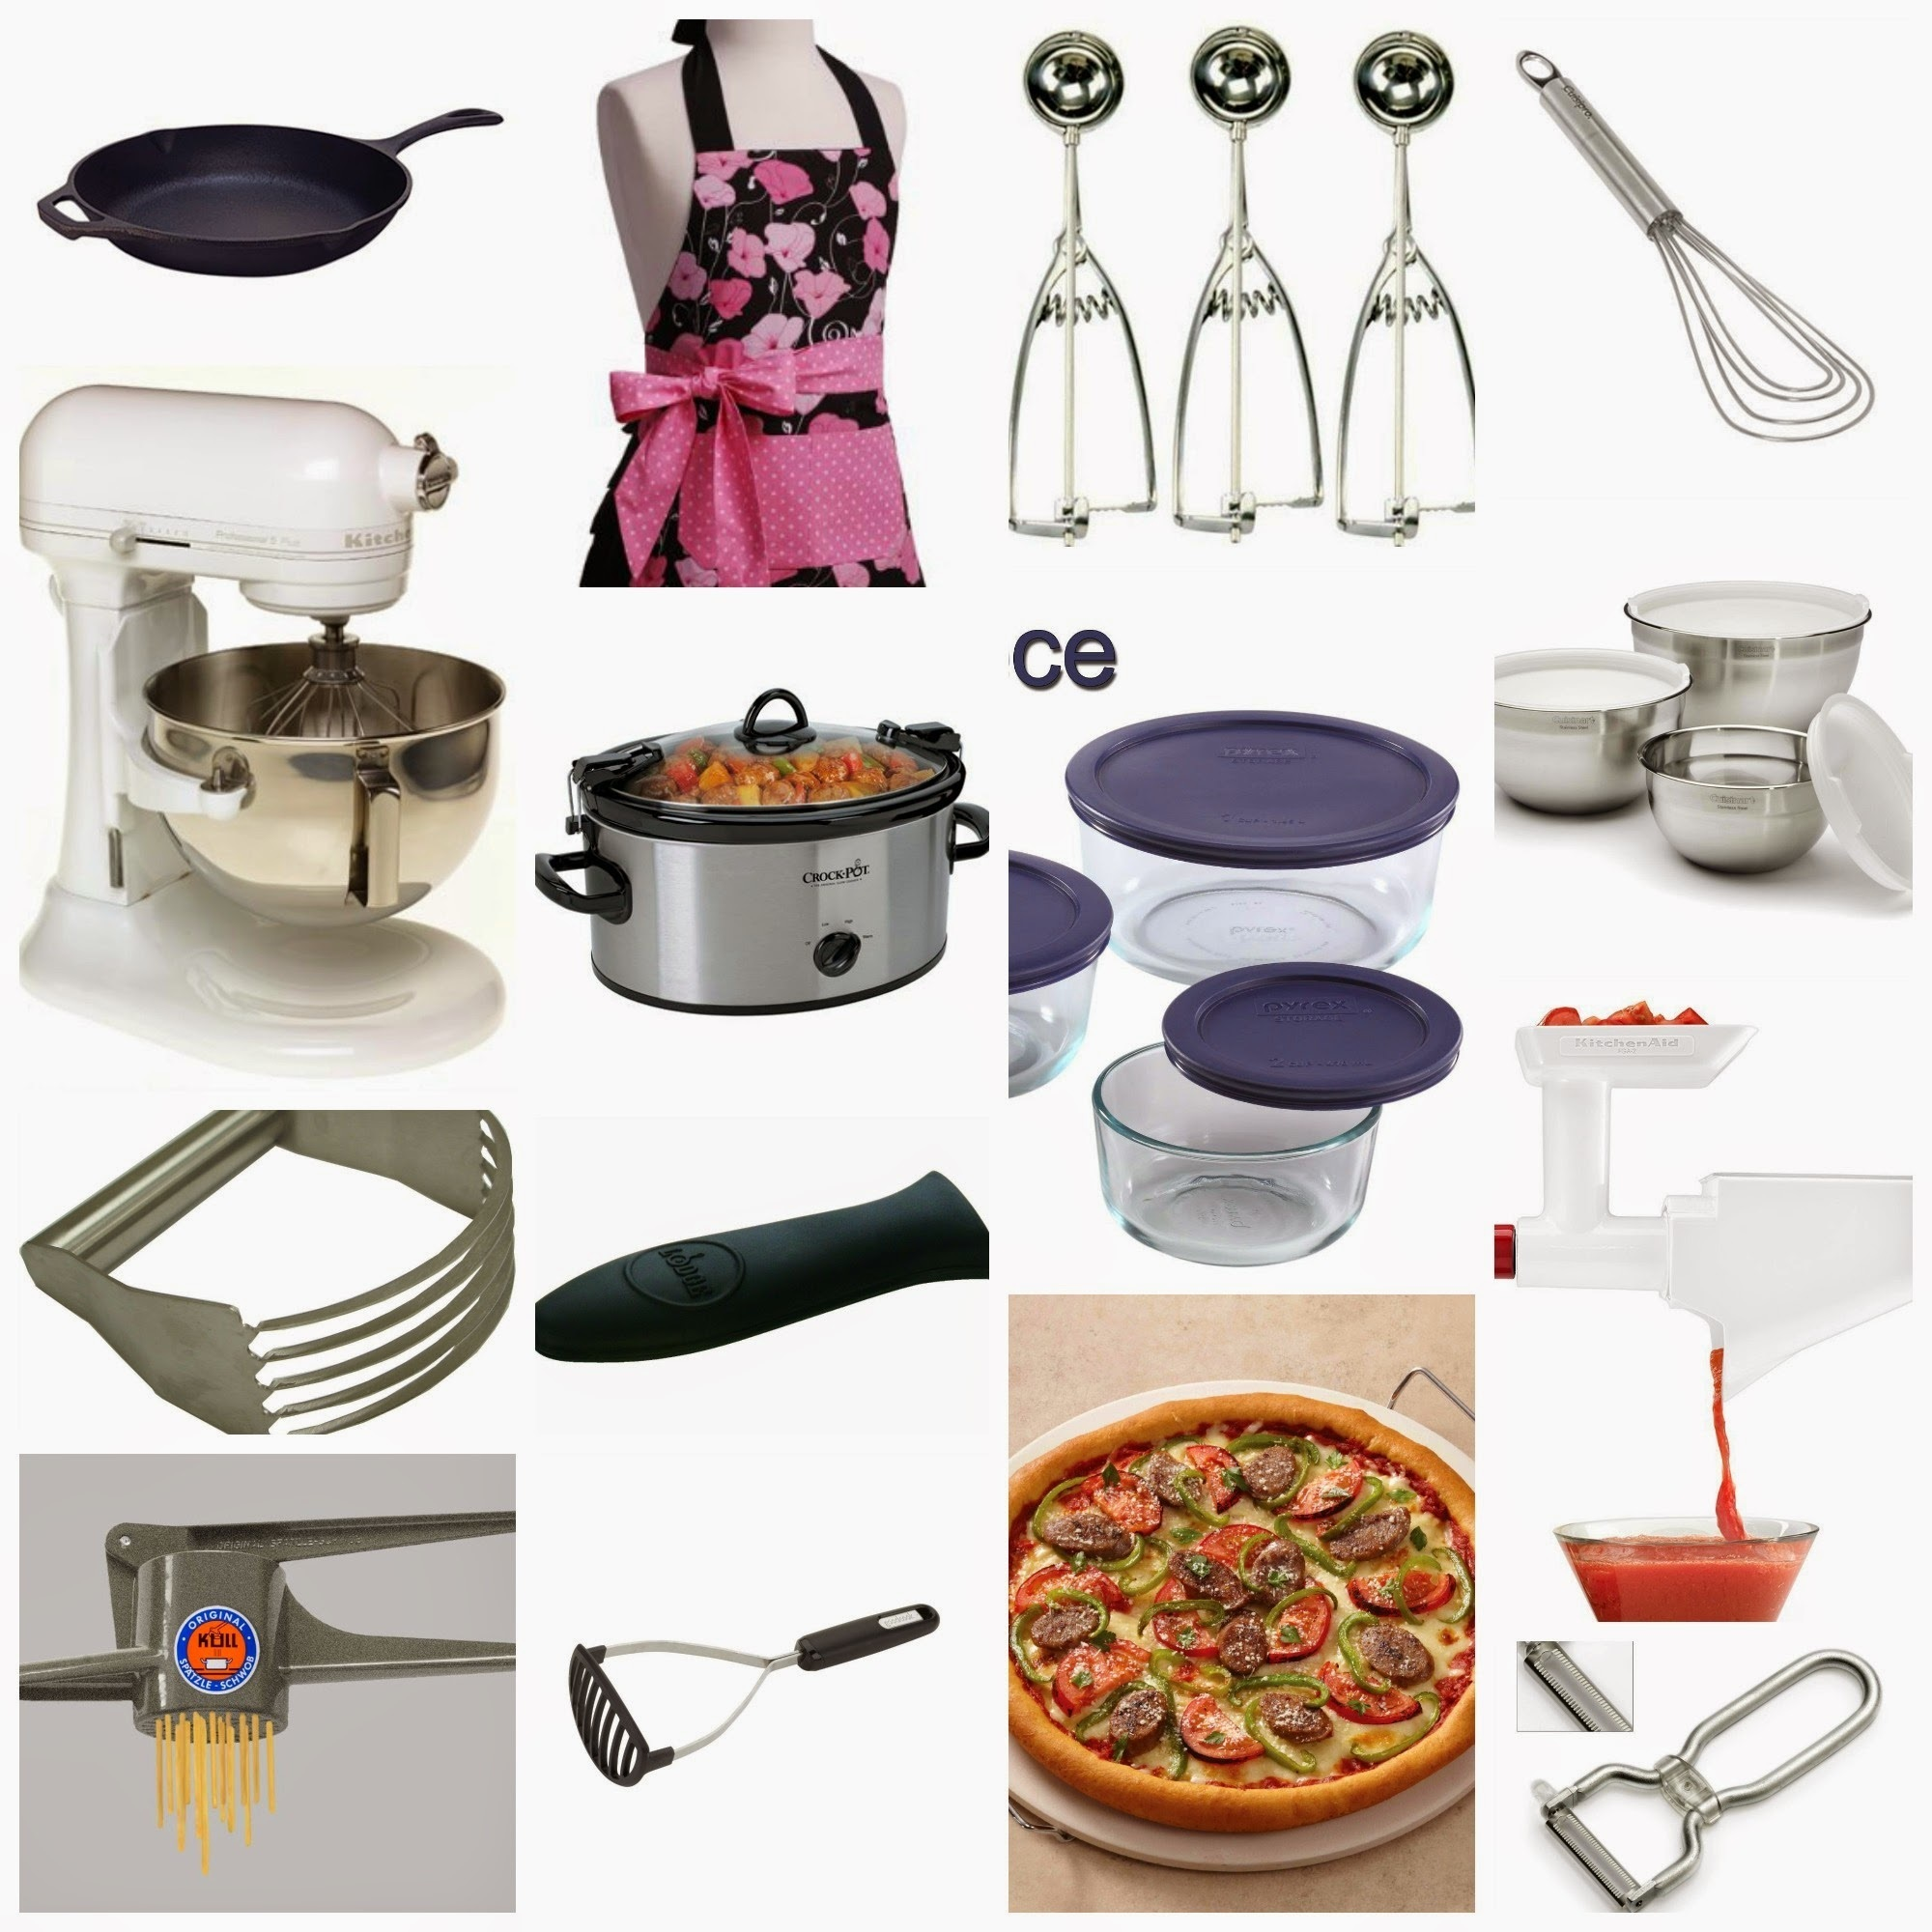 2014 Holiday Gift Guide - 15 Must-Have Items for Your Kitchen